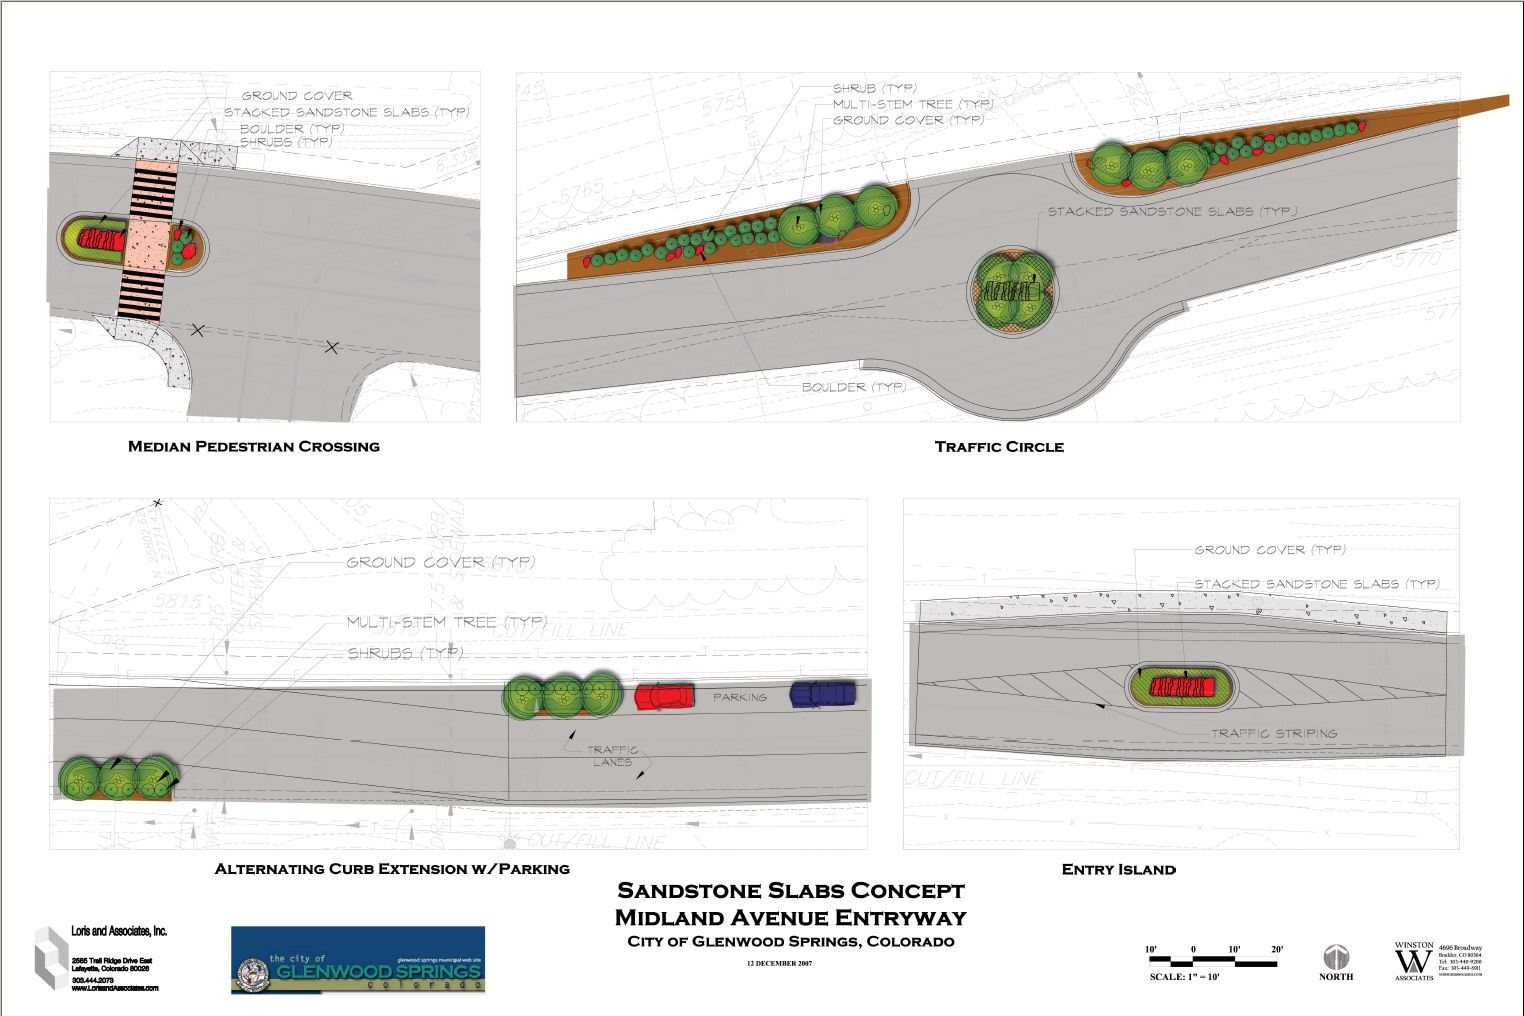 Detailed concept designs of the entryway sandstone